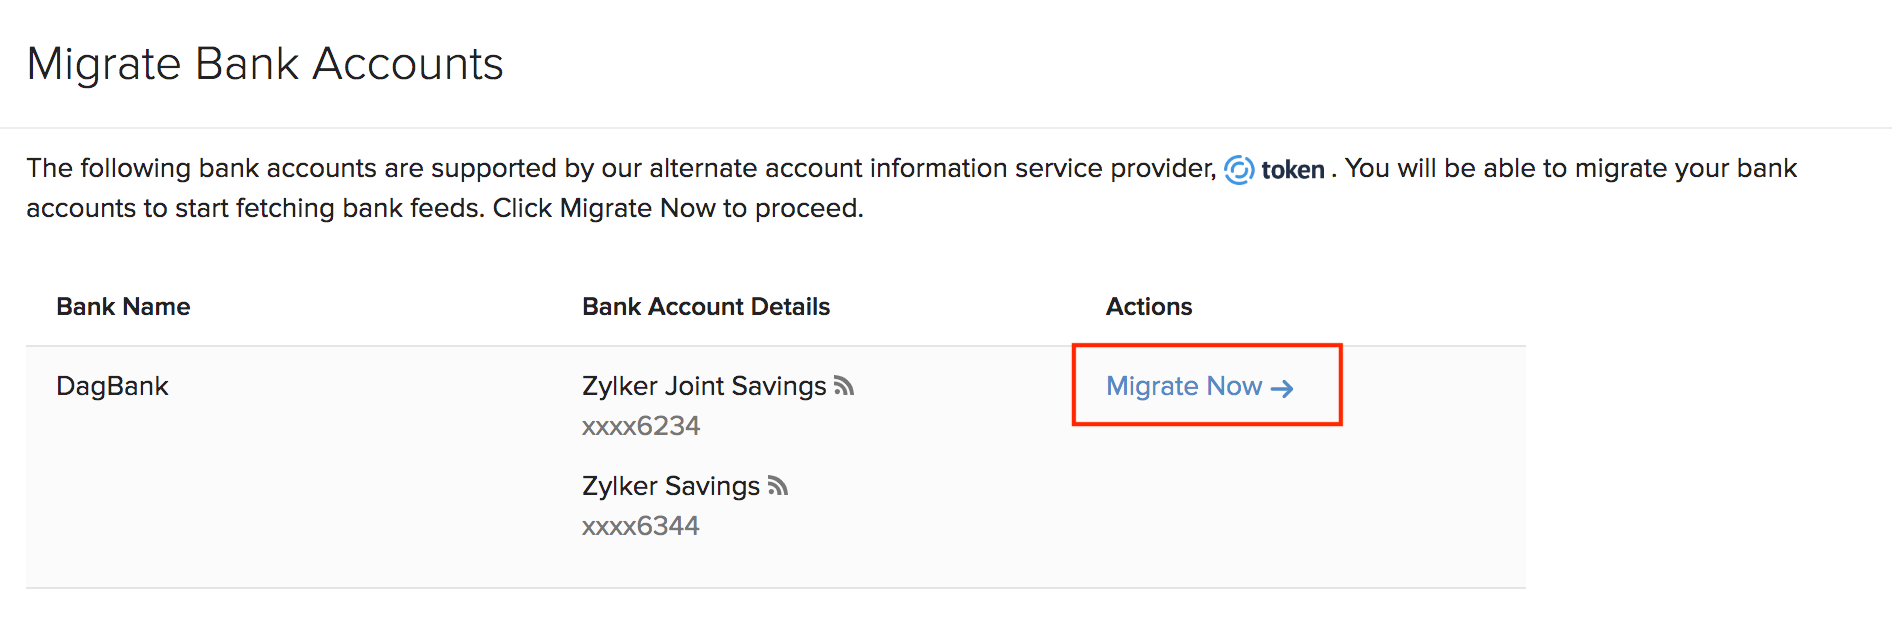 Migrate Now